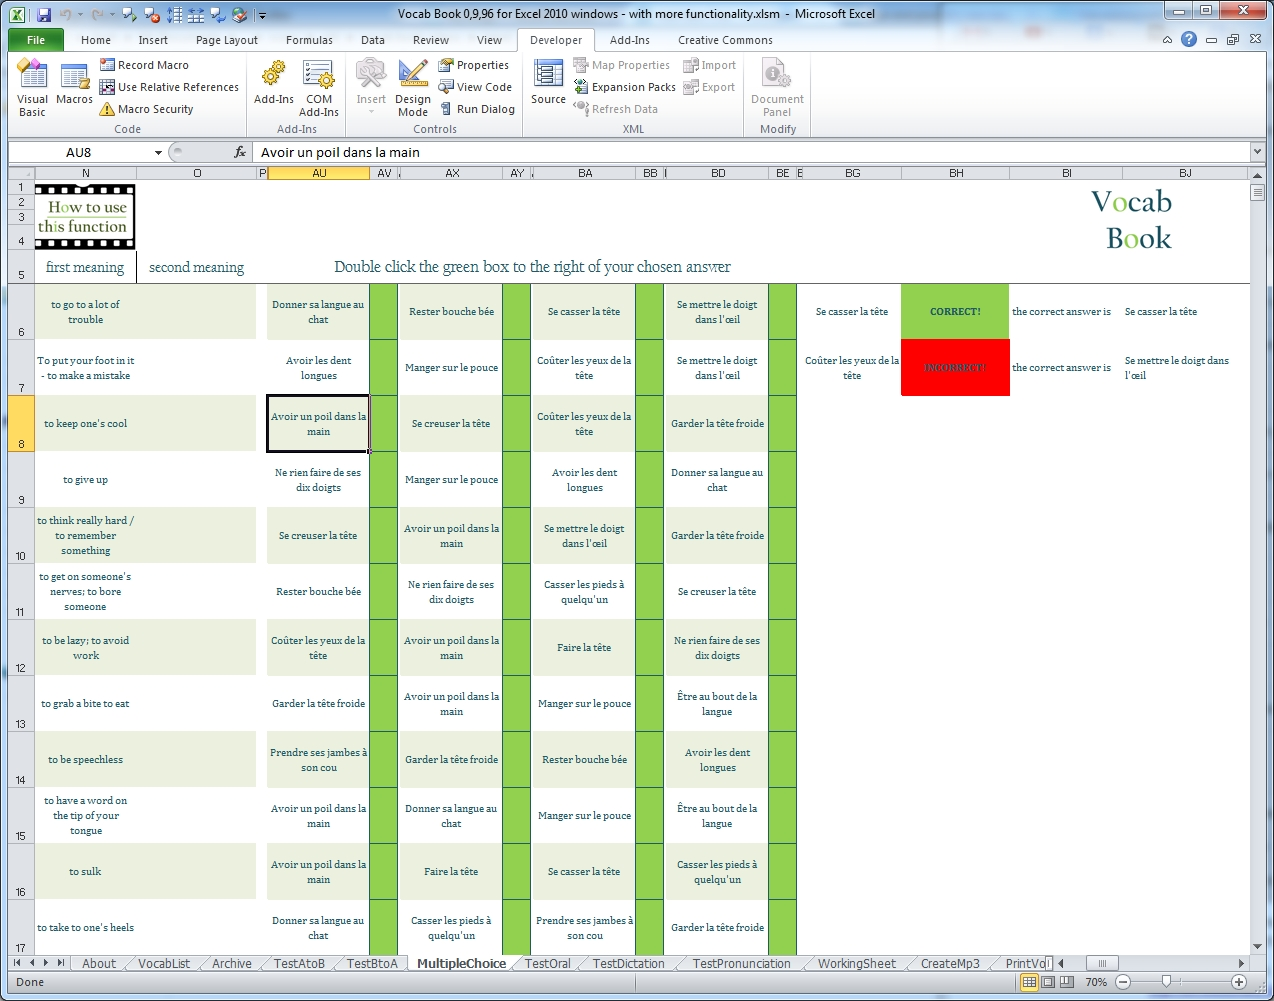 Powerful And Fully Featured Excel Based Vocabulary Learning Tool